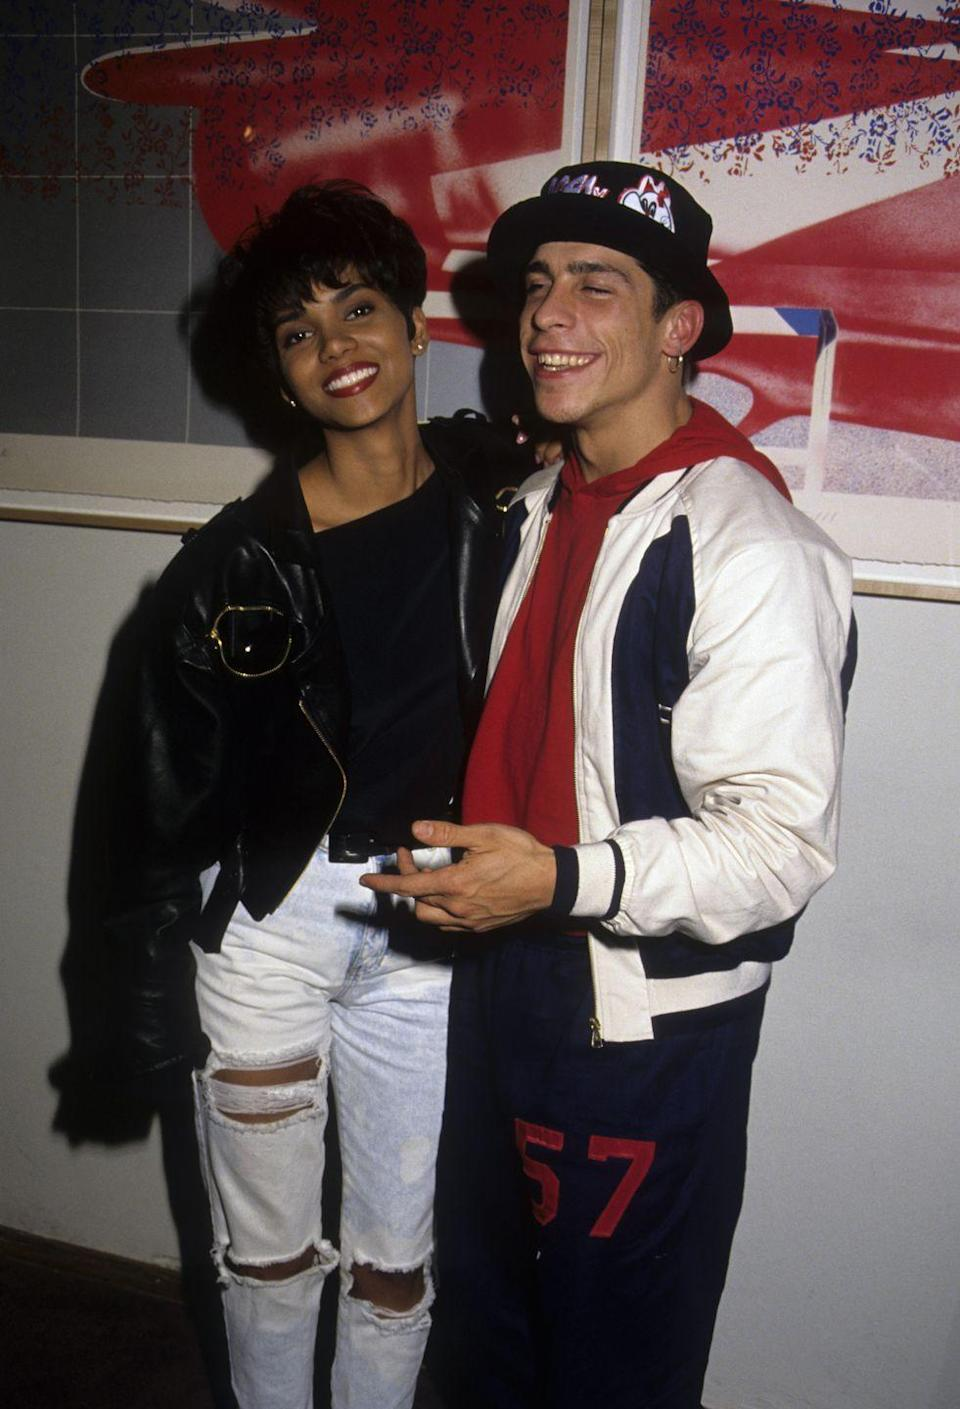 <p>Halle Berry was a long way from her Oscar-winning night in 2011 circa this late '80s red carpet. But we'd say posing with Danny Wood from New Kids on the Block was a pretty solid start for her.</p>